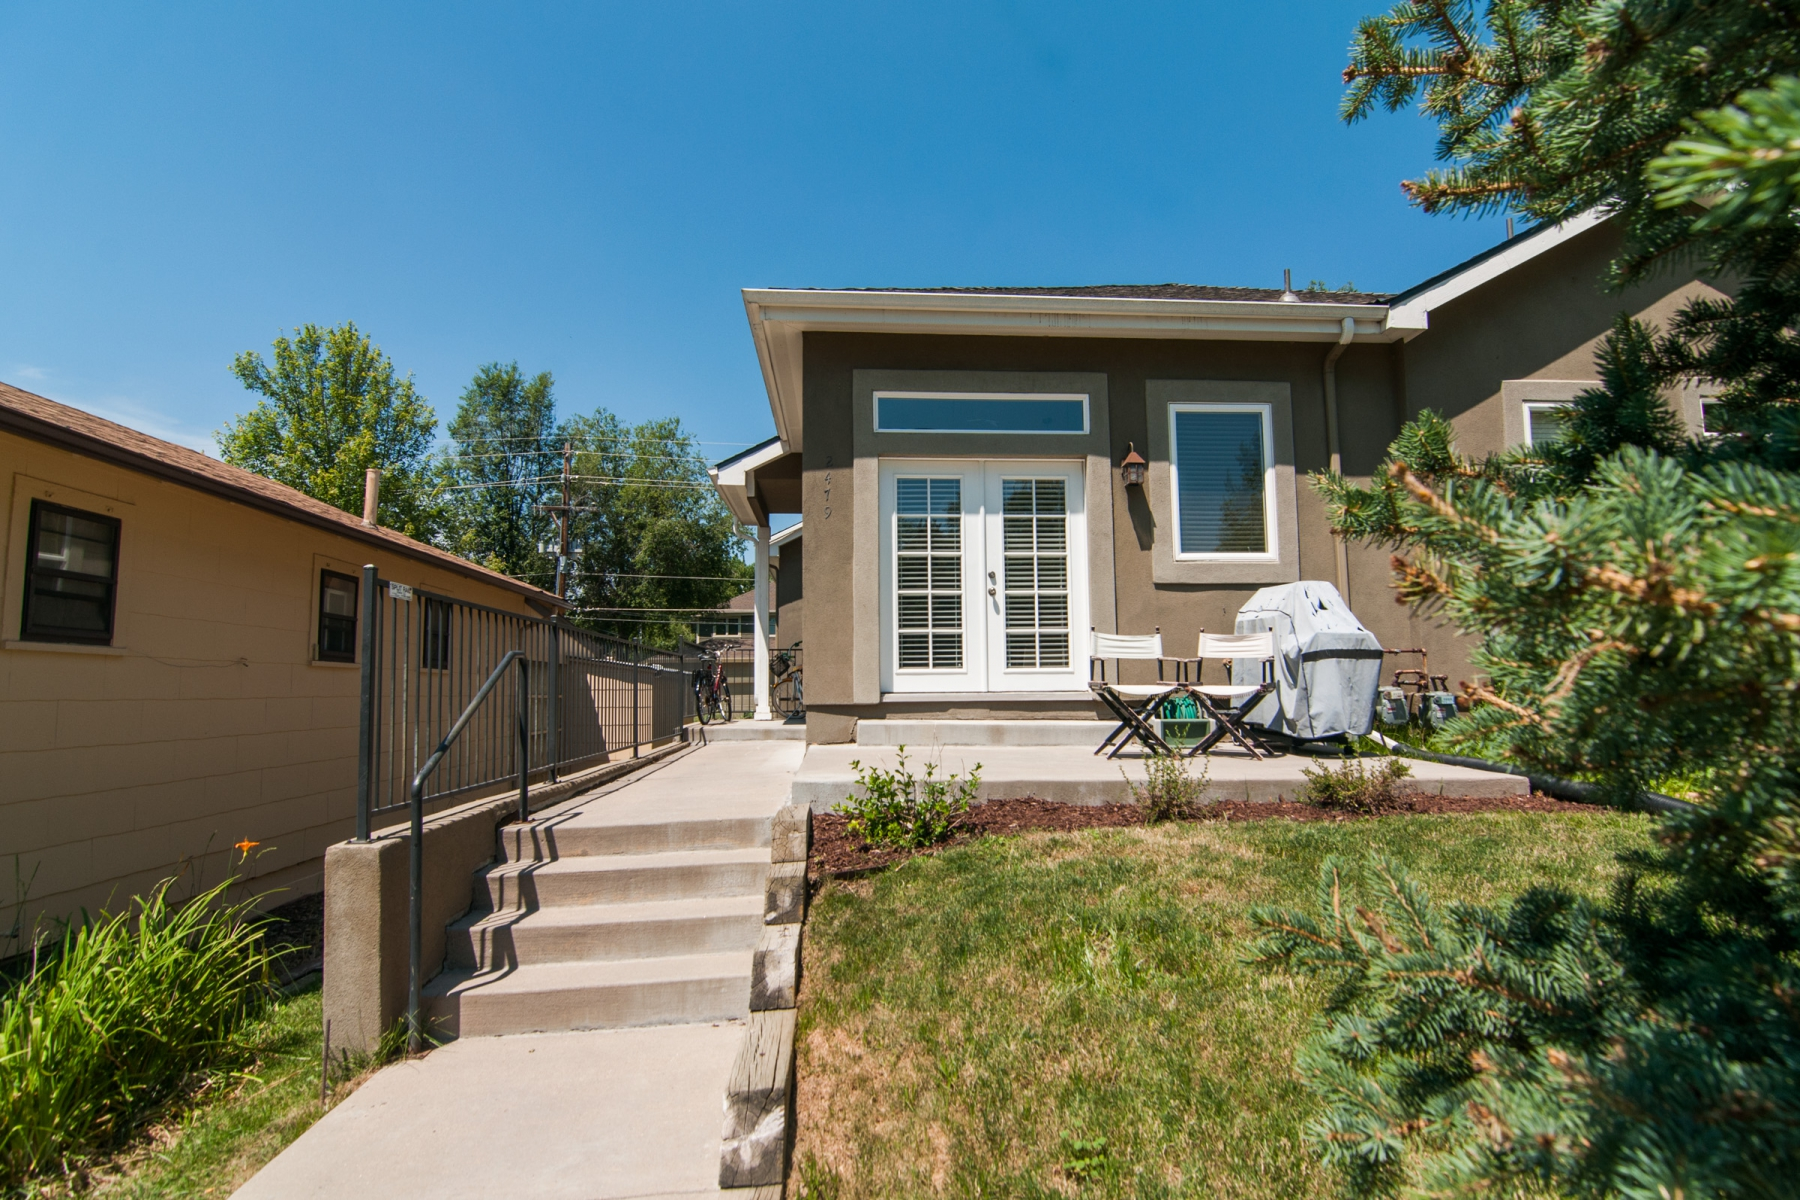 Single Family Home for Sale at DU Property 2479 South High Street Denver, Colorado 80210 United States